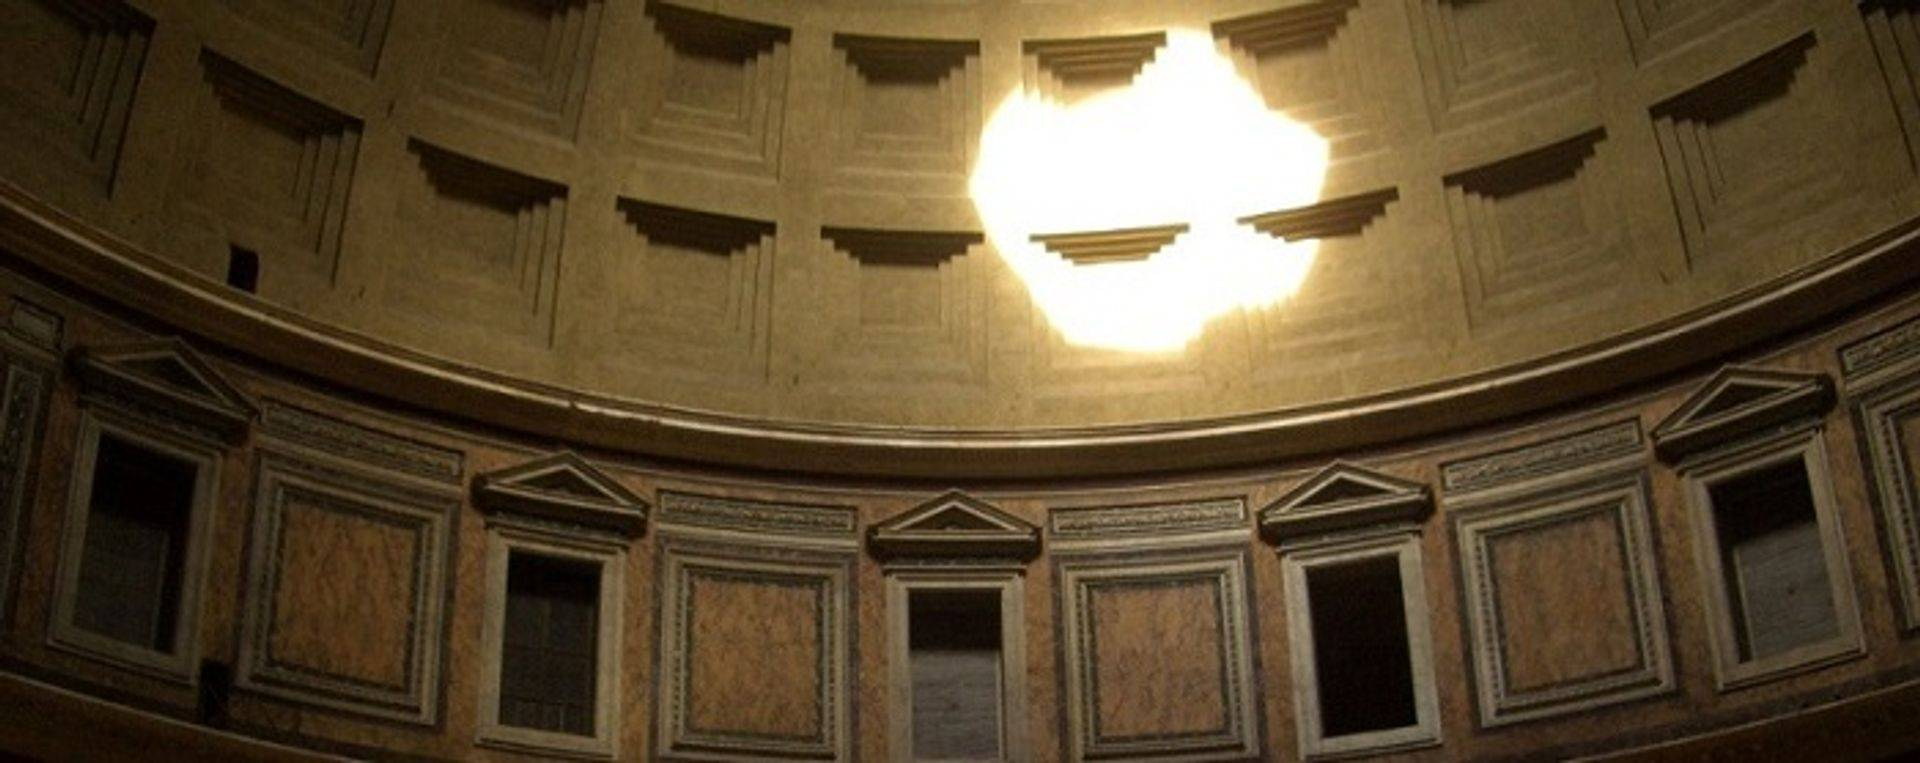 "womens travel.jpg alt= womens travel,interior pantheon, rome, italy "">"